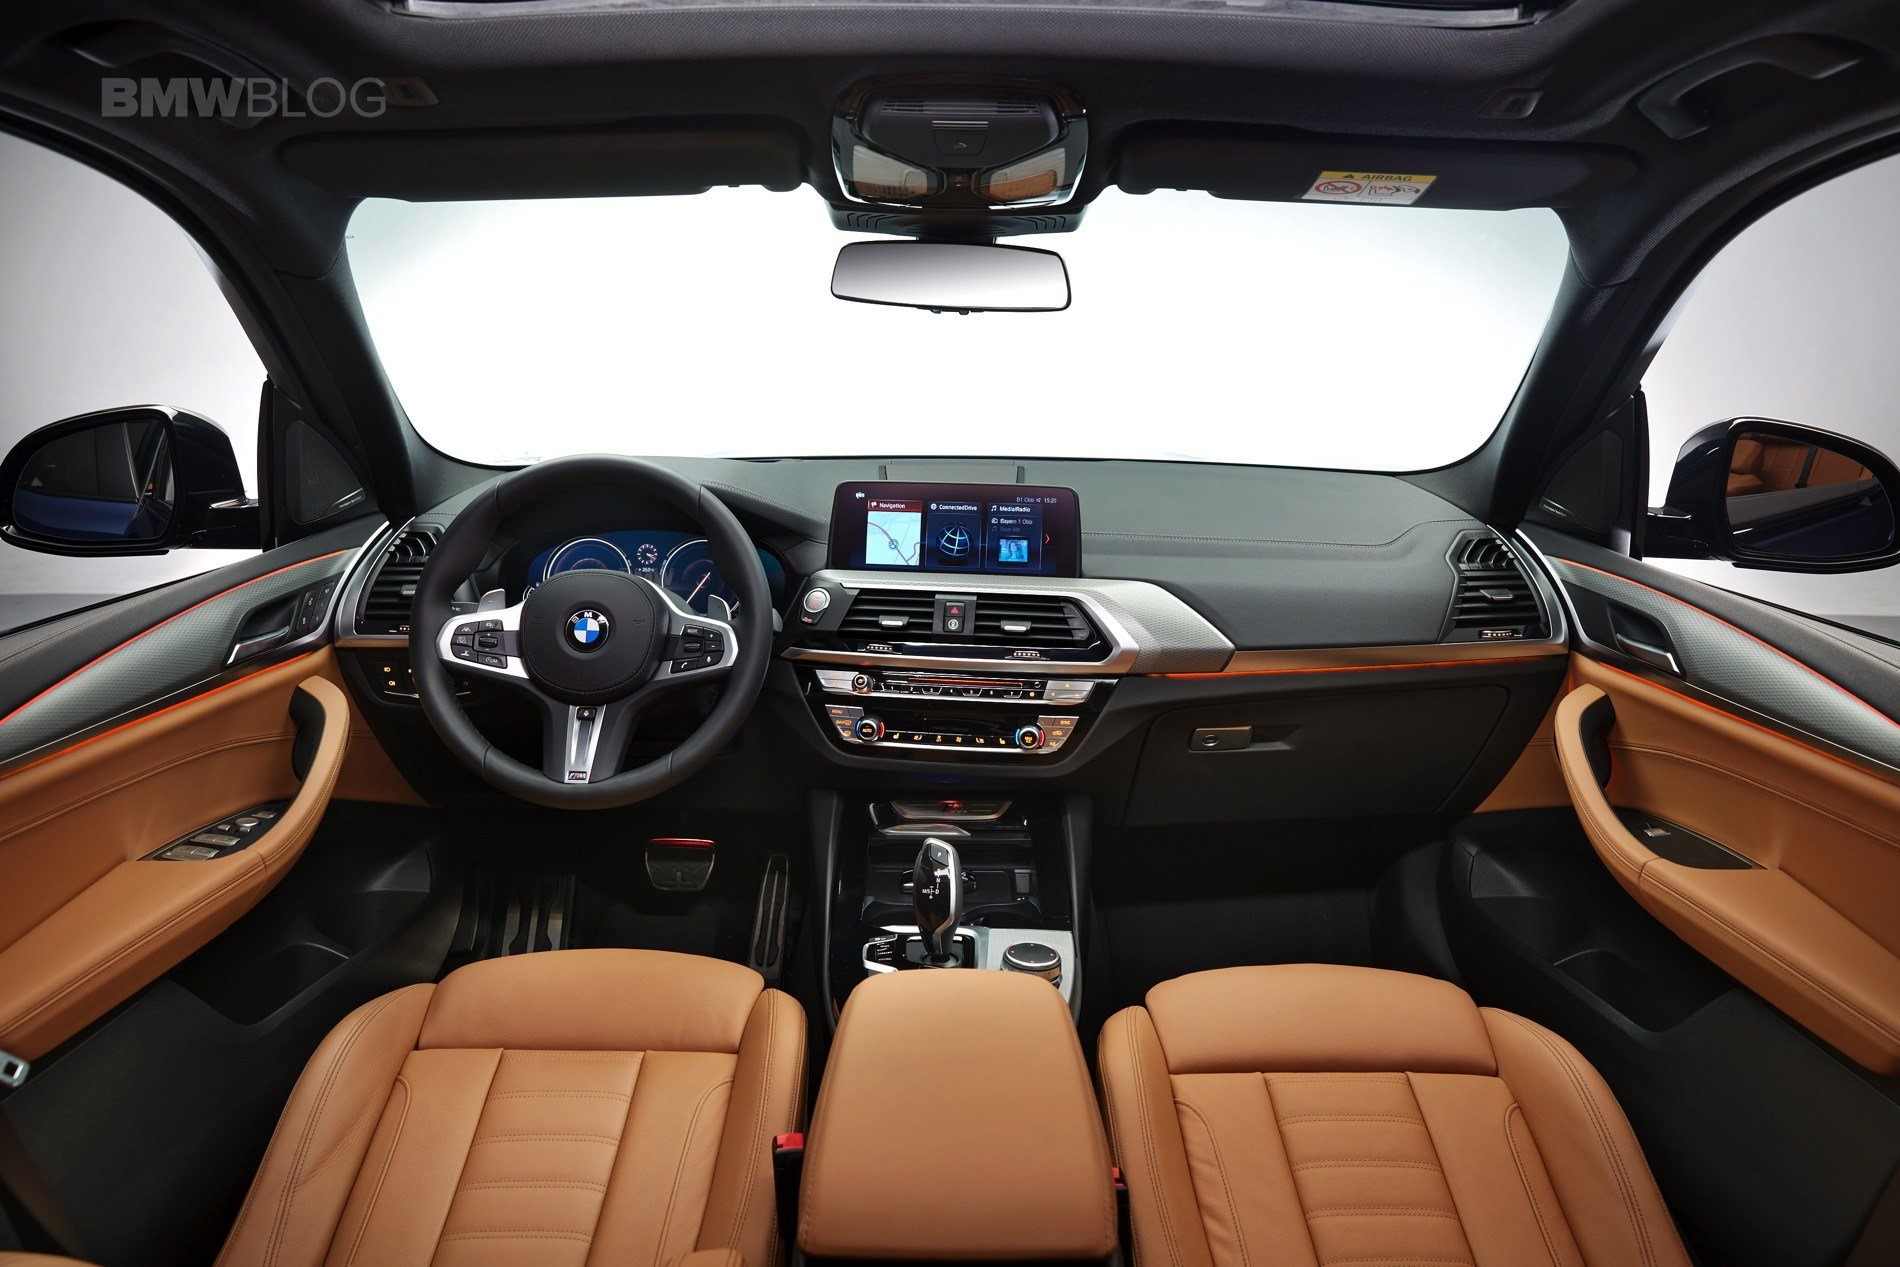 Latest Exclusive Live Photos Of The New 2018 Bmw X3 I New Cars Free Download